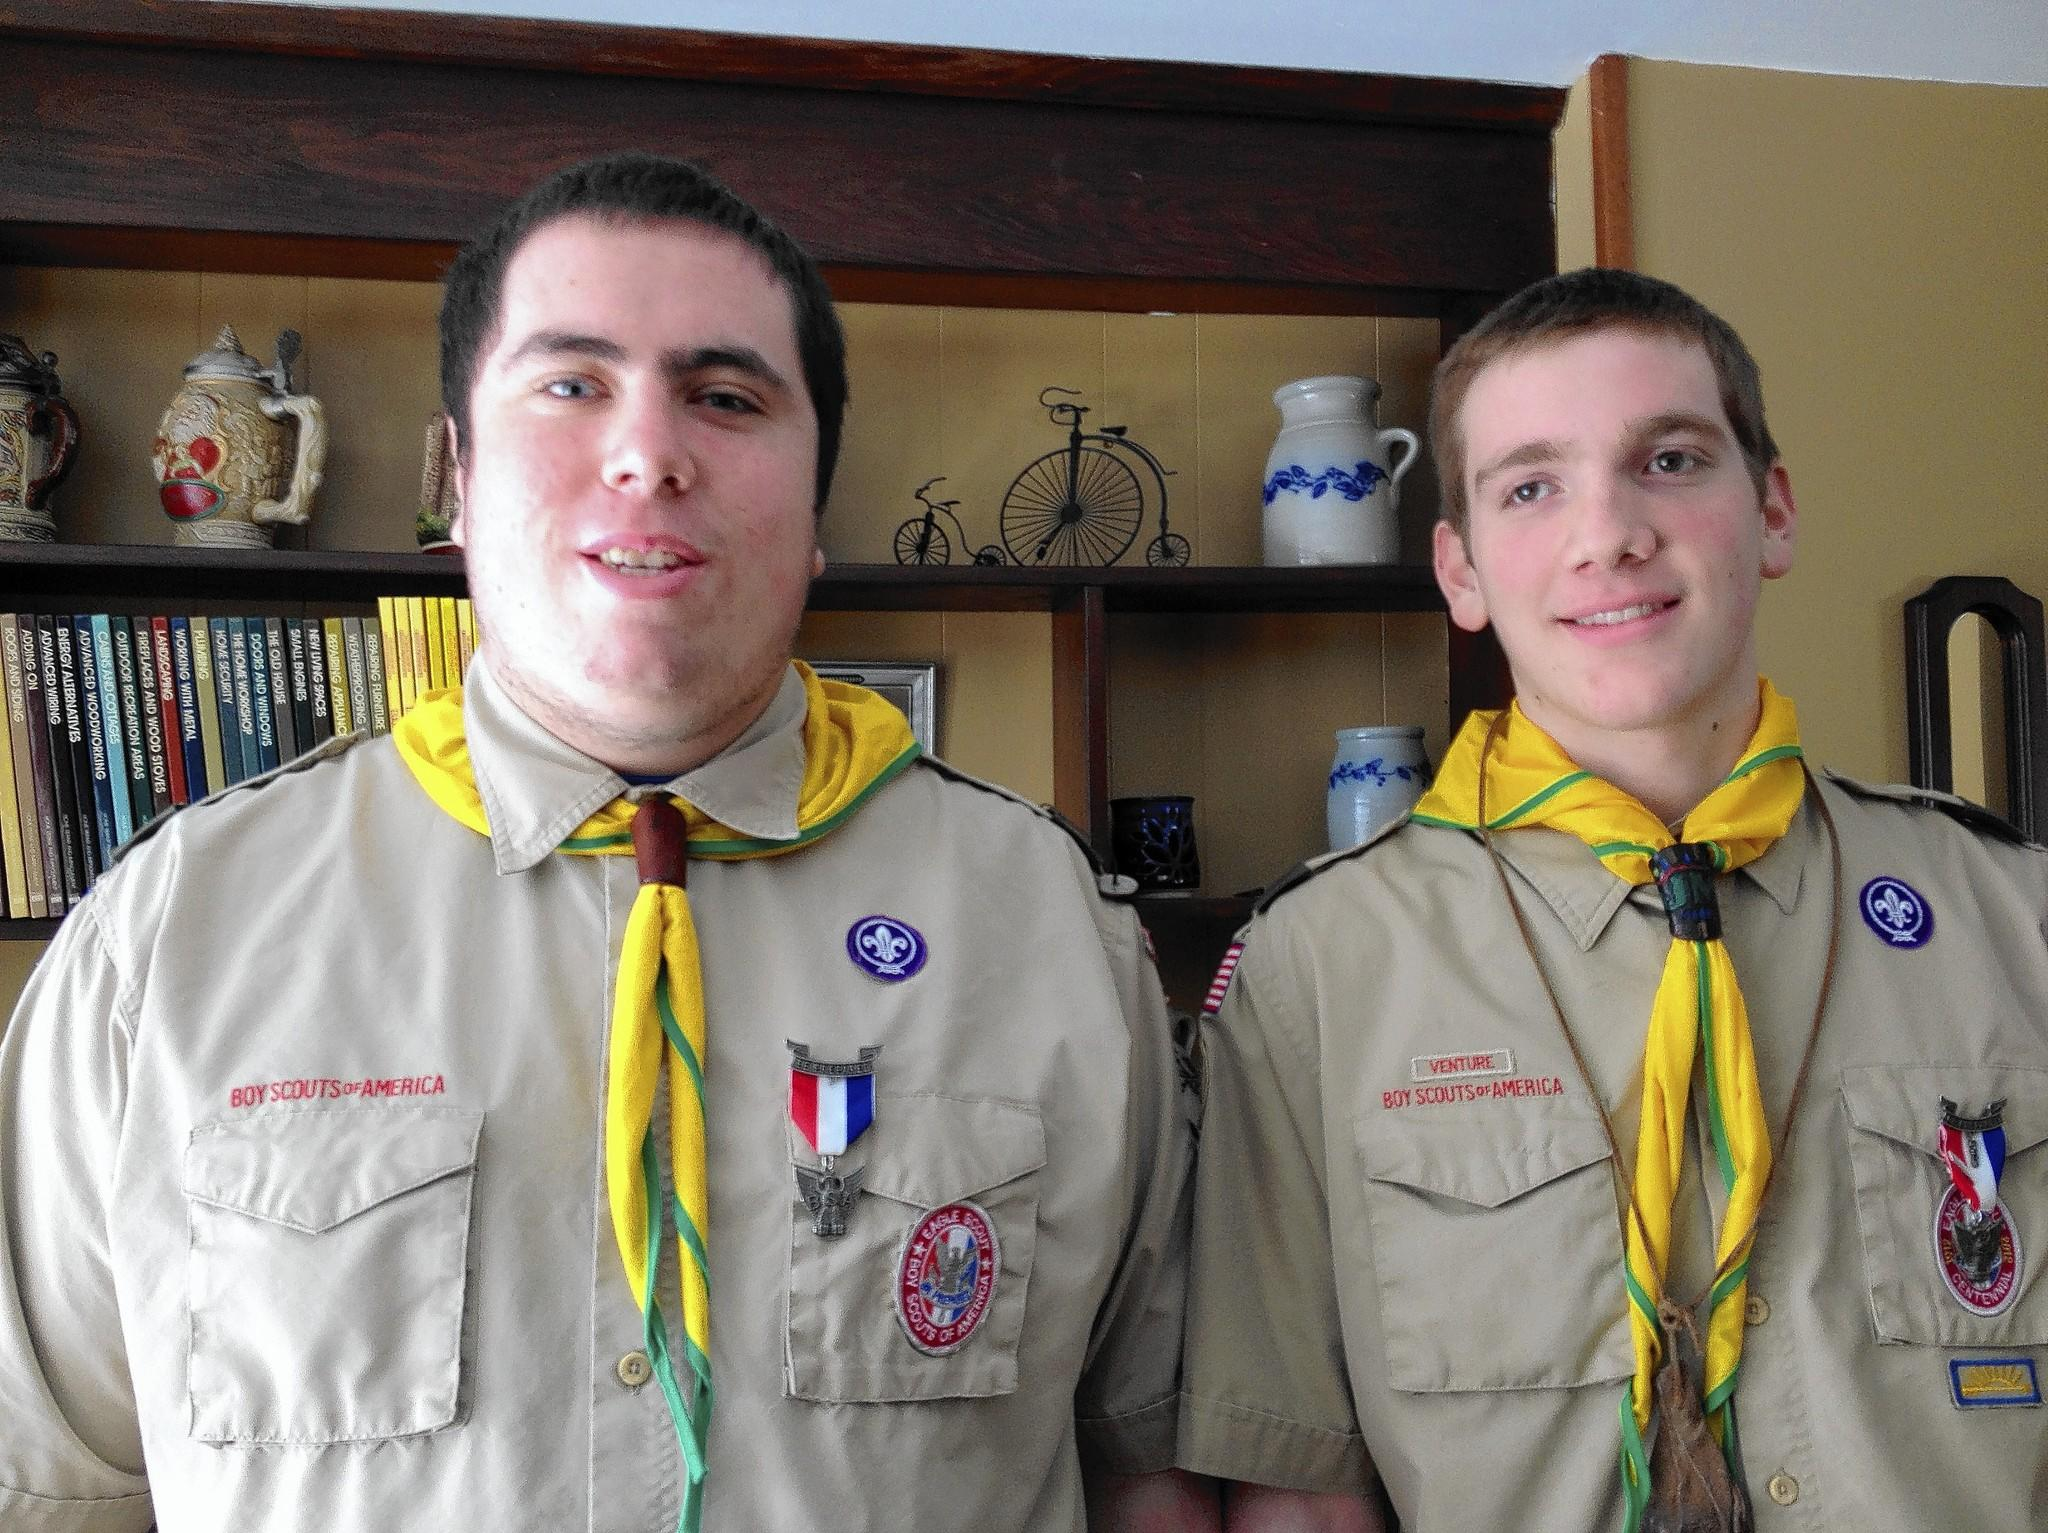 Eagle Scouts Brian Fearon, left, and Jonathan Maidment are hiking the Appalachian Trail to raise research money for Alpha-1 antitrypsin deficiency. Maidment has the genetic disorder.